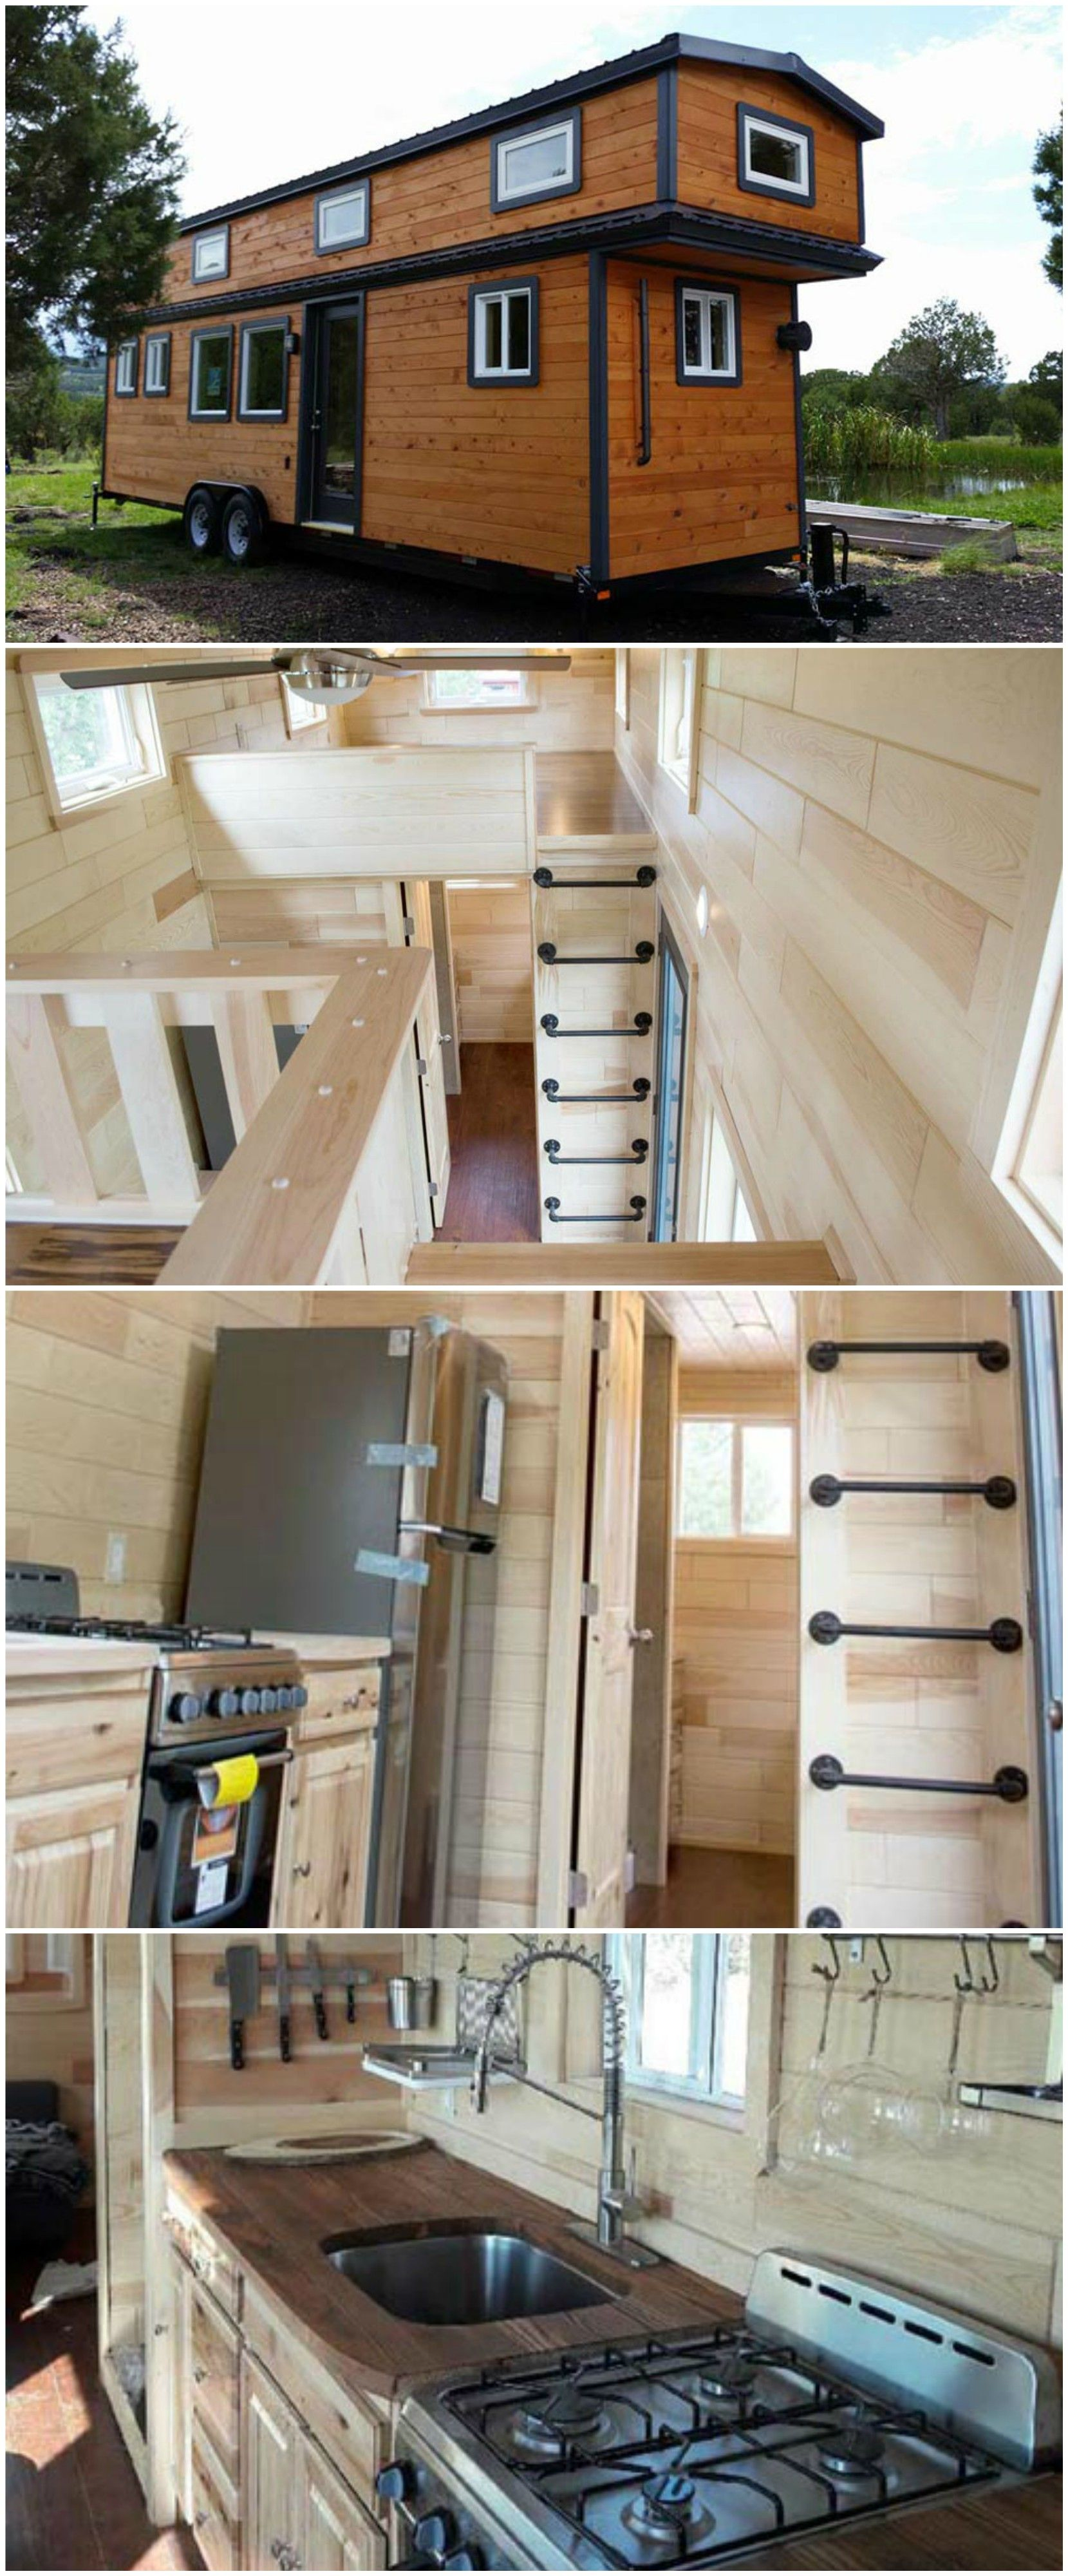 Elegant Custom 30u2032 Is A Lovely Tiny House Built By Tiny Treasure Homes. The Exterior  Has Natural Wood Siding With Black Painted Trim. A Full Light Front Door  And ...